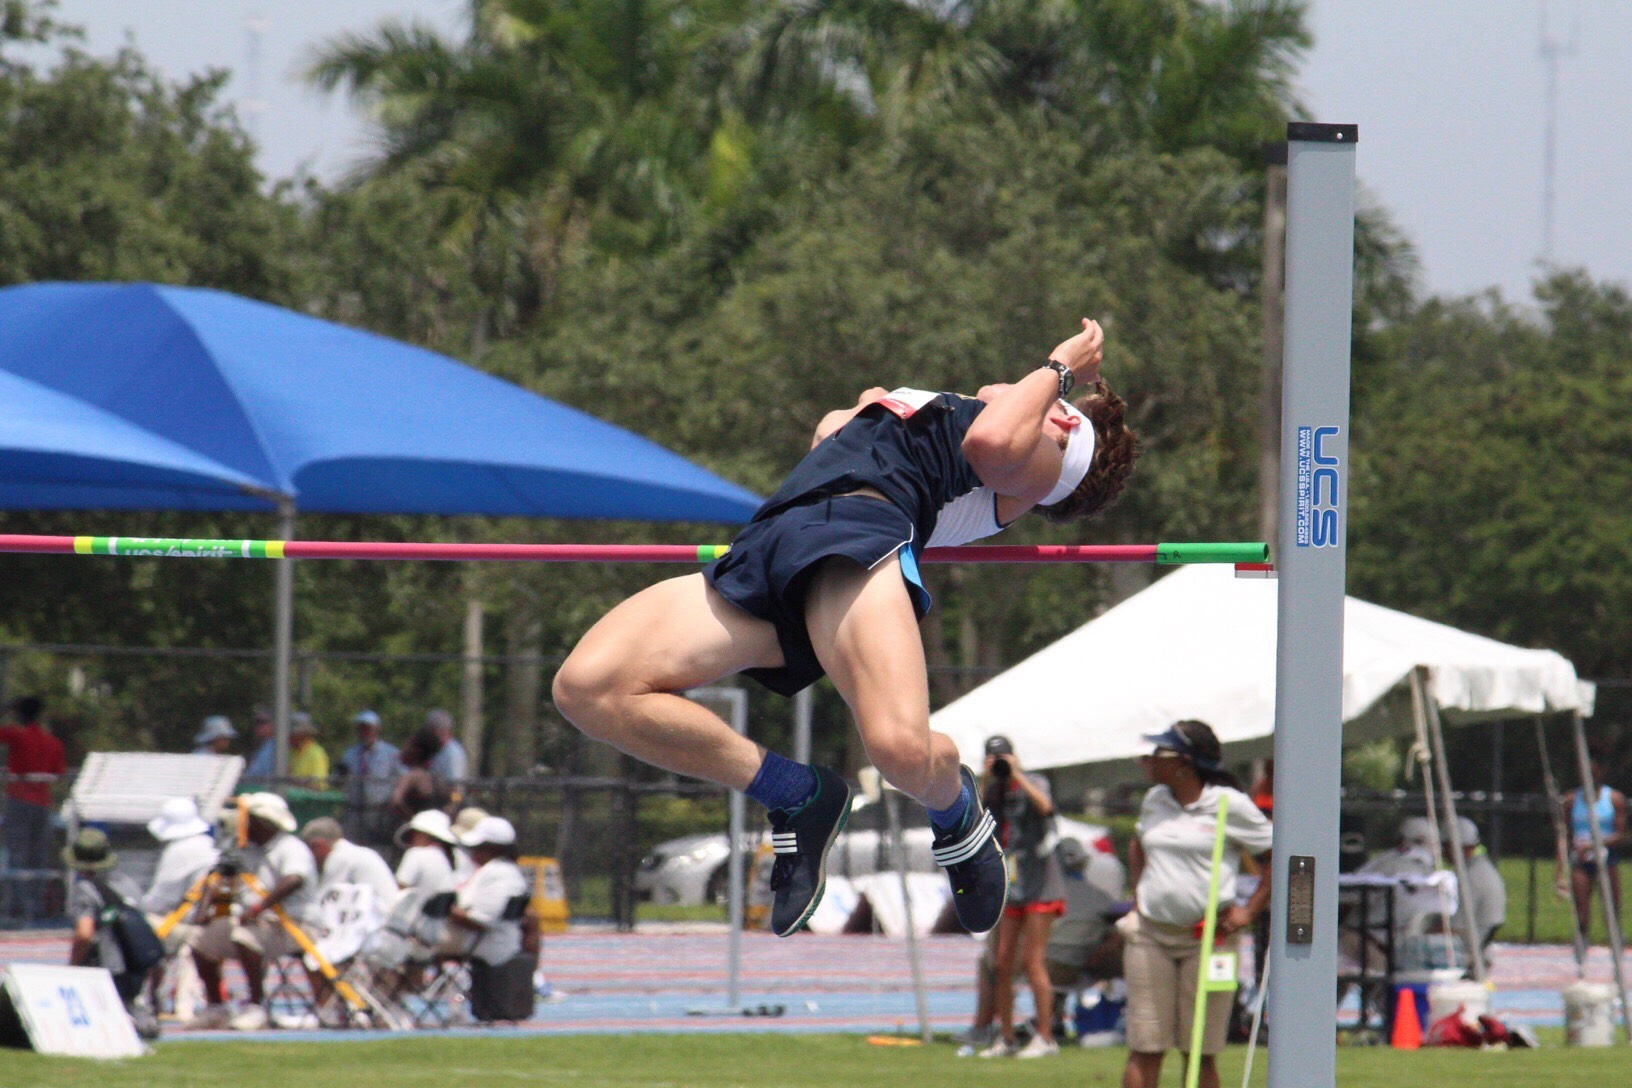 Brentwood's Jett Kinder to participate in U20 Pan American games